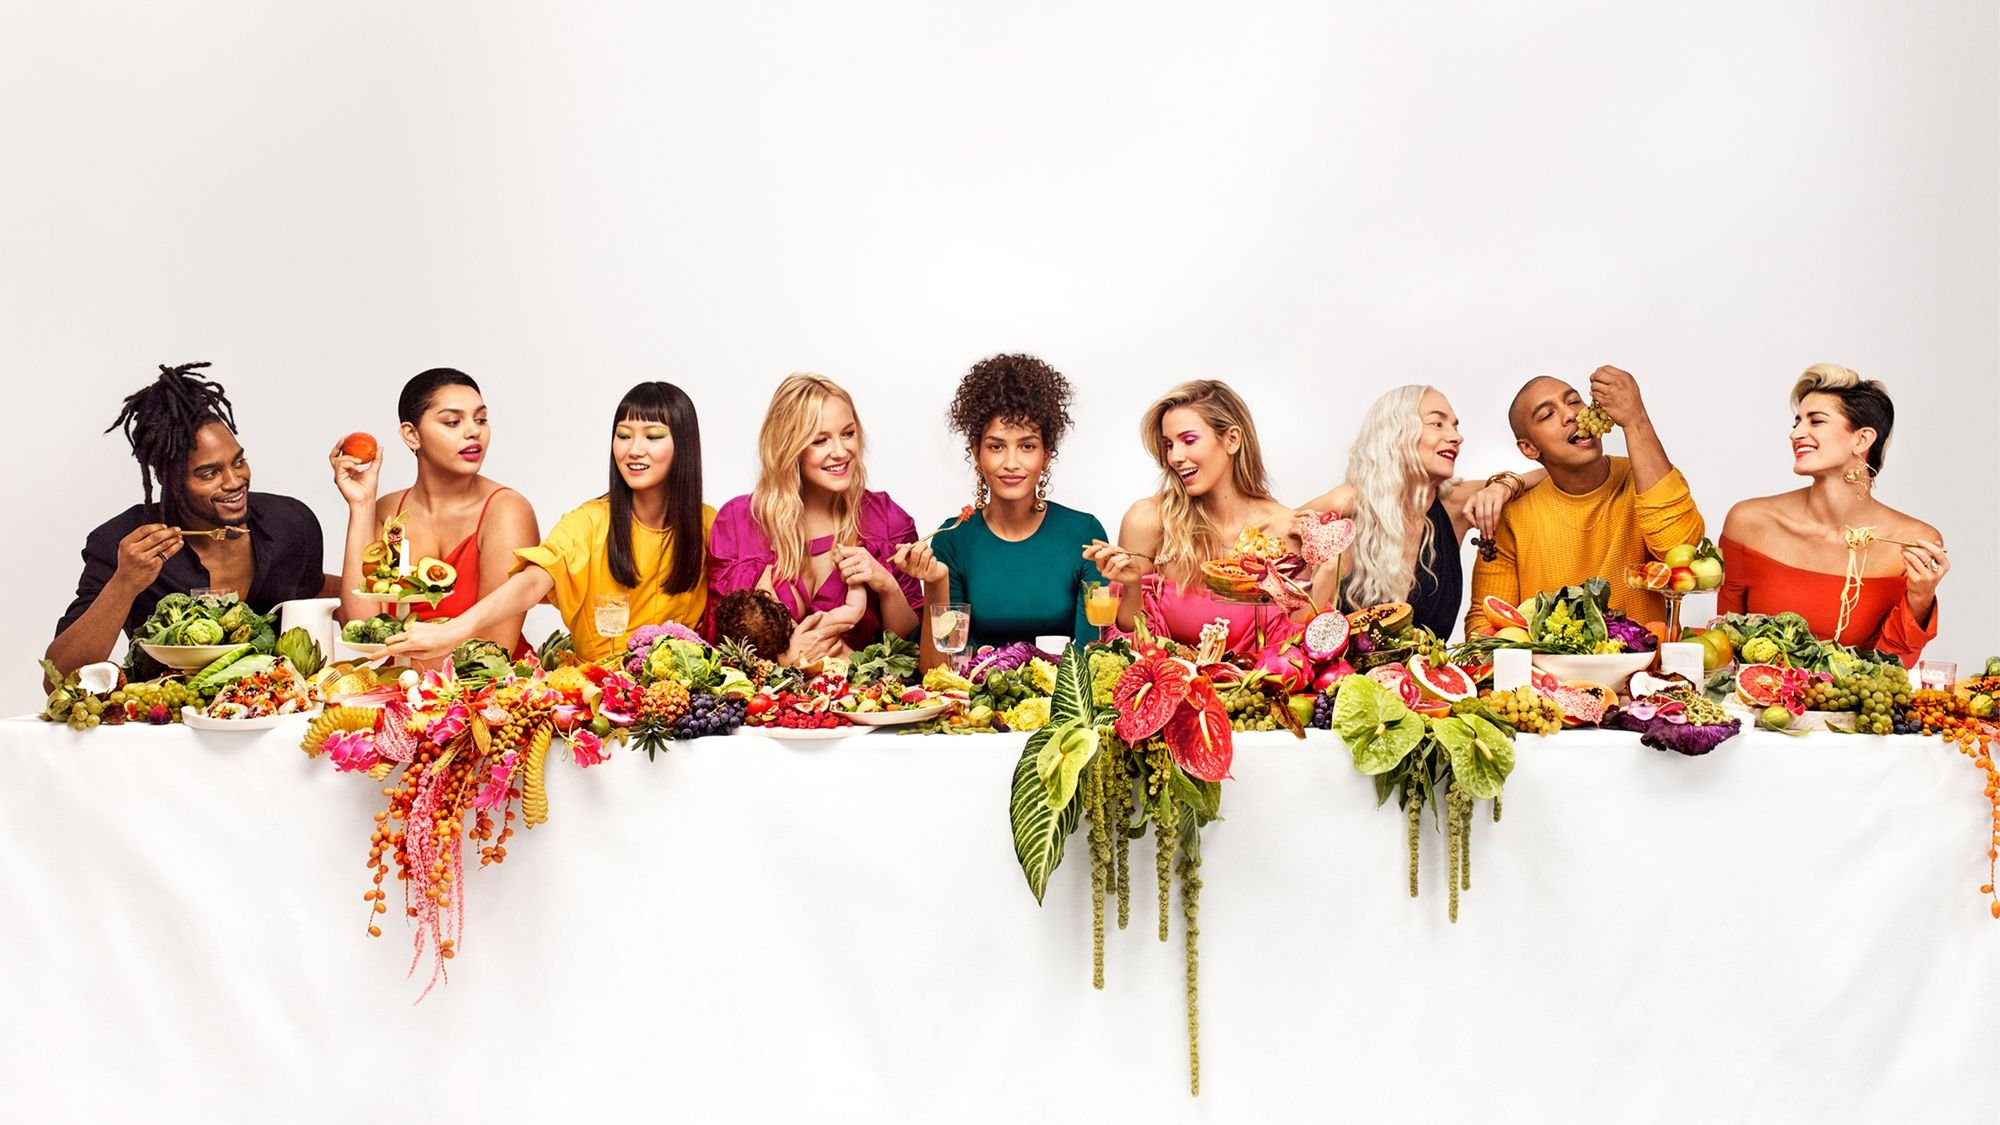 No sacrifices. Sakara last supper table-scape. Campaign Art direction by RoAndCo